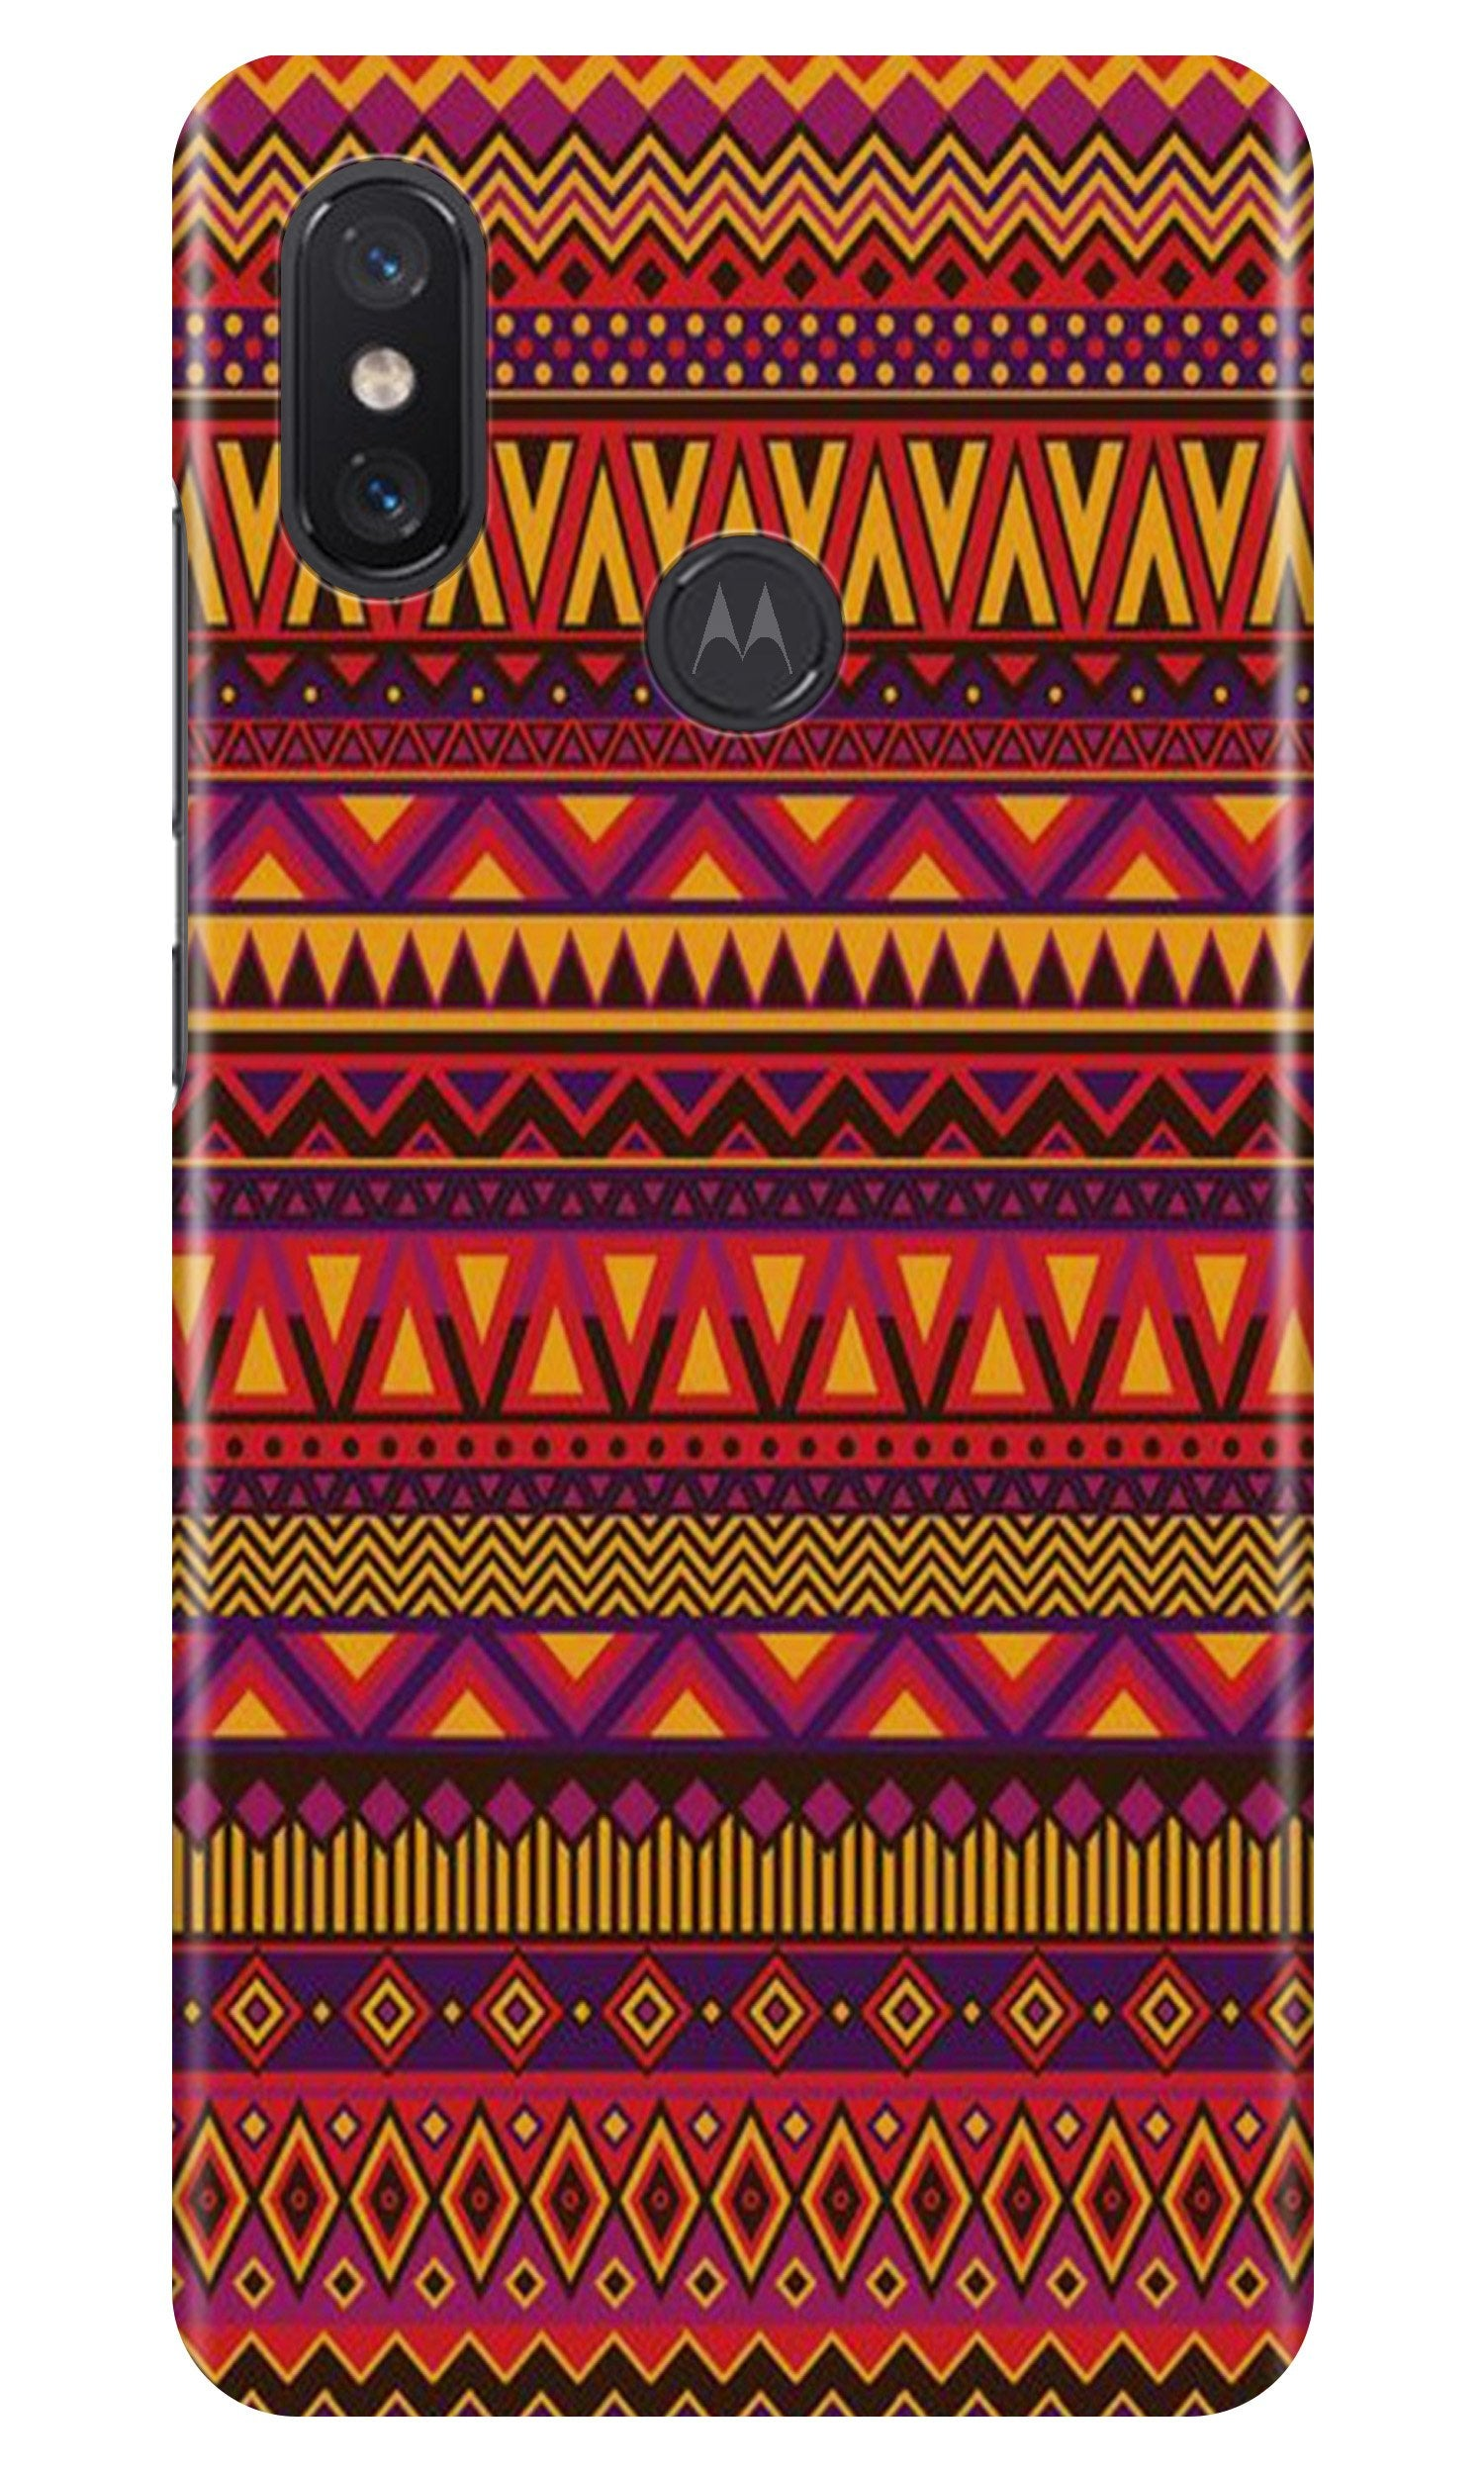 Zigzag line pattern2 Case for Moto One Power